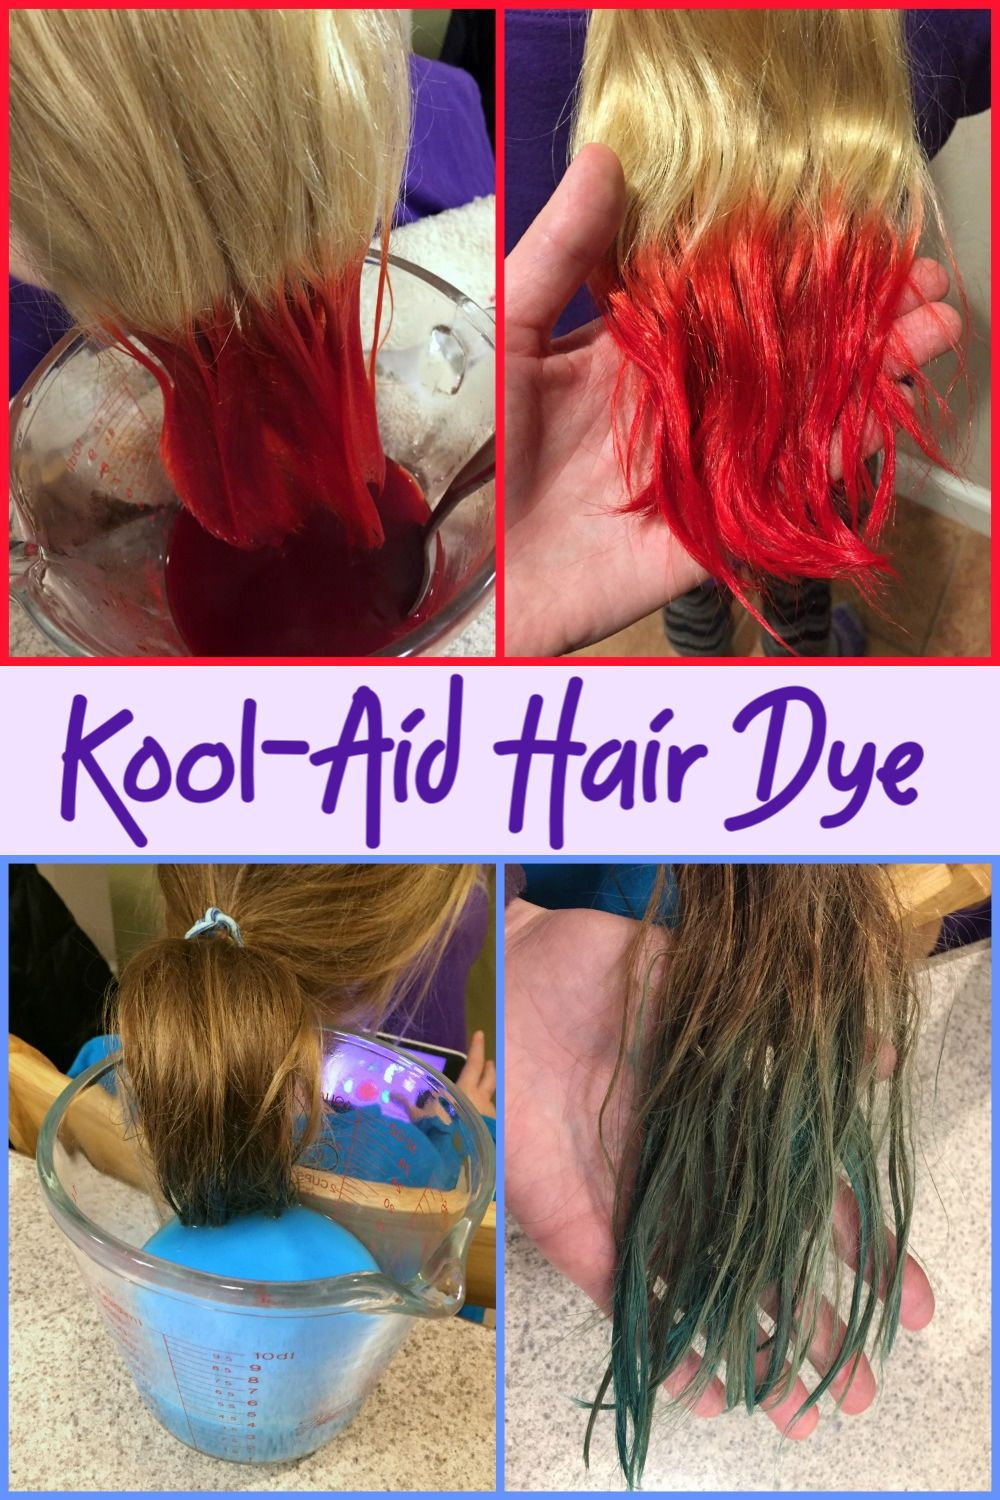 How To Dye Hair With Kool Aid In 2020 Food Coloring Hair Dye Kids Hair Color Hair Dye For Kids